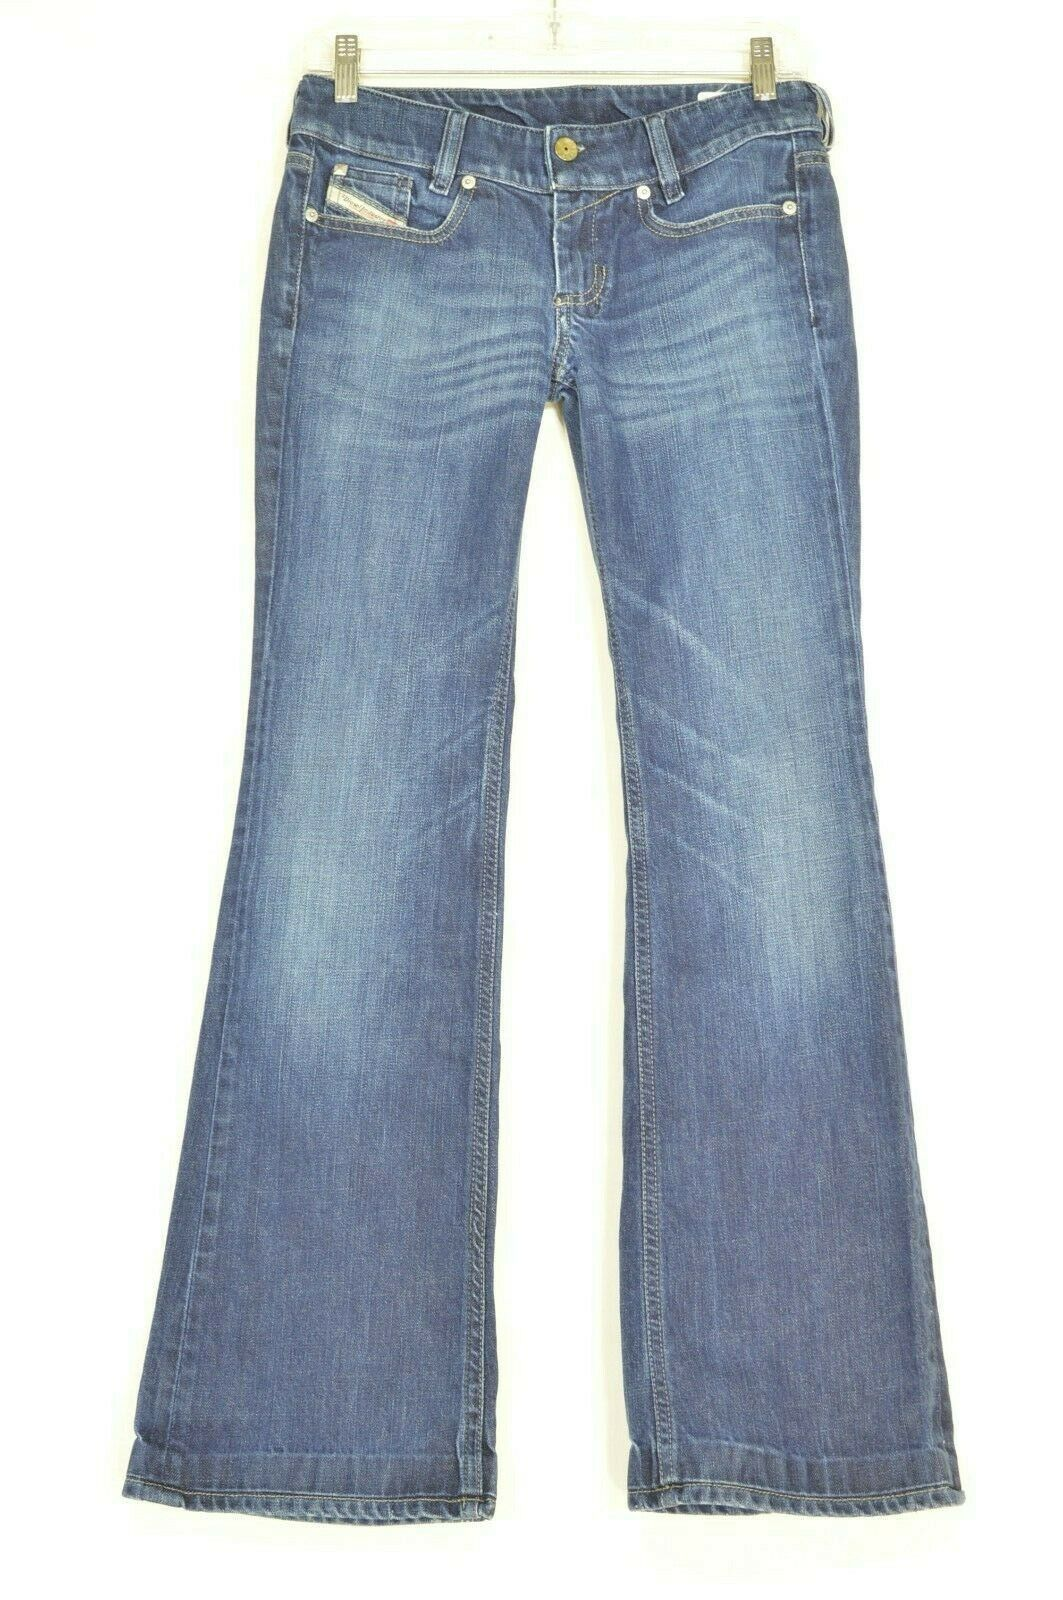 Primary image for Diesel jeans 26 x 32 Louvely dark straight leg slight flare Italy